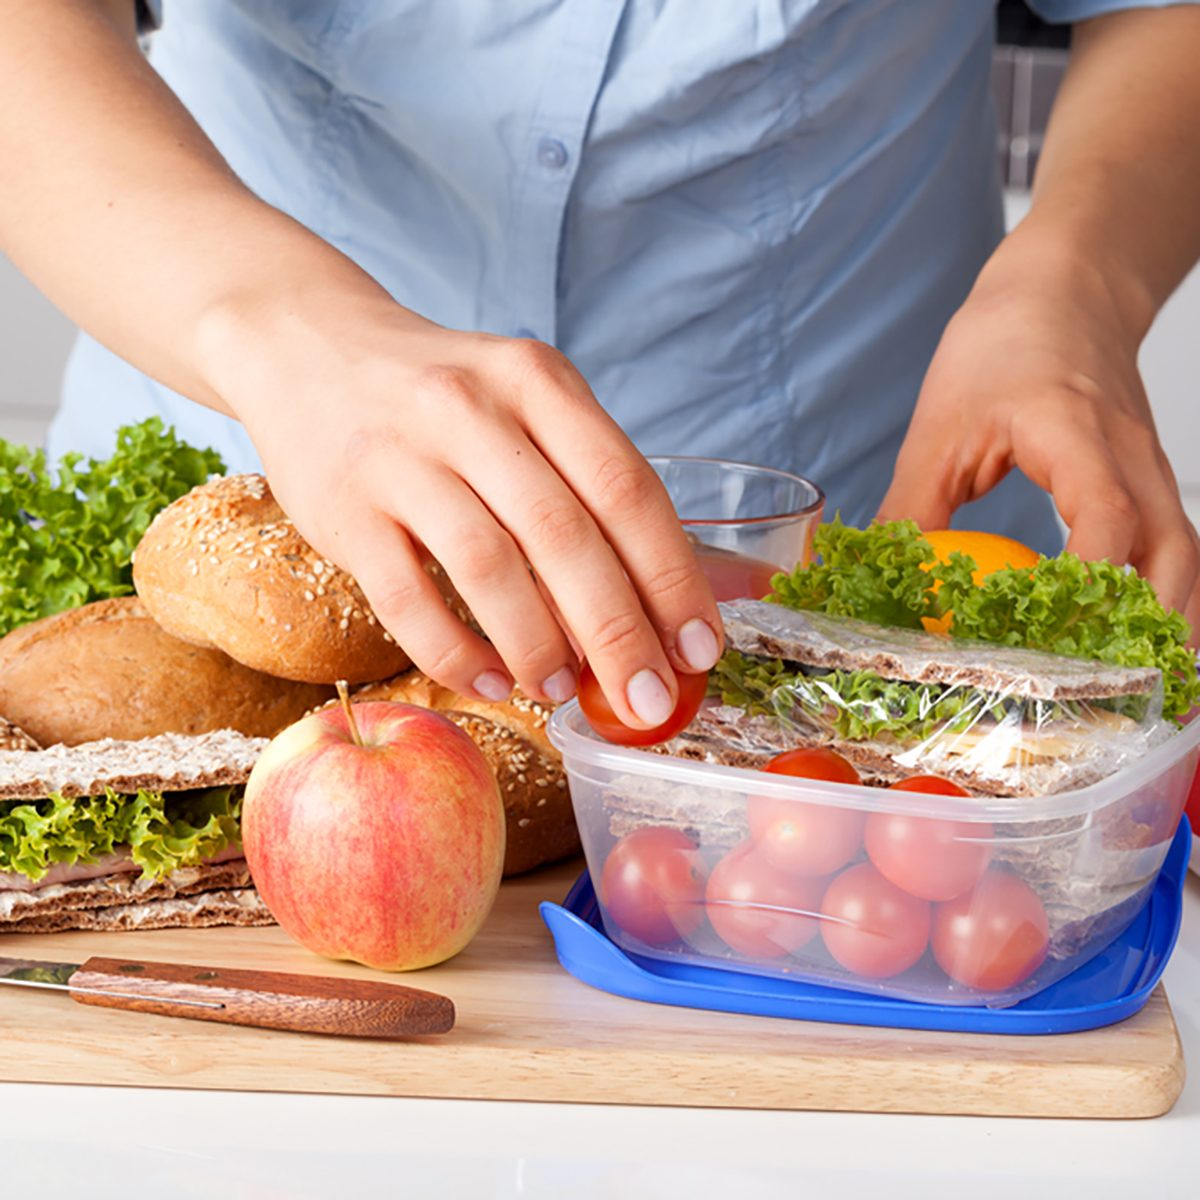 Woman in blue t-shirt preparing a lunchbox in the kitchen